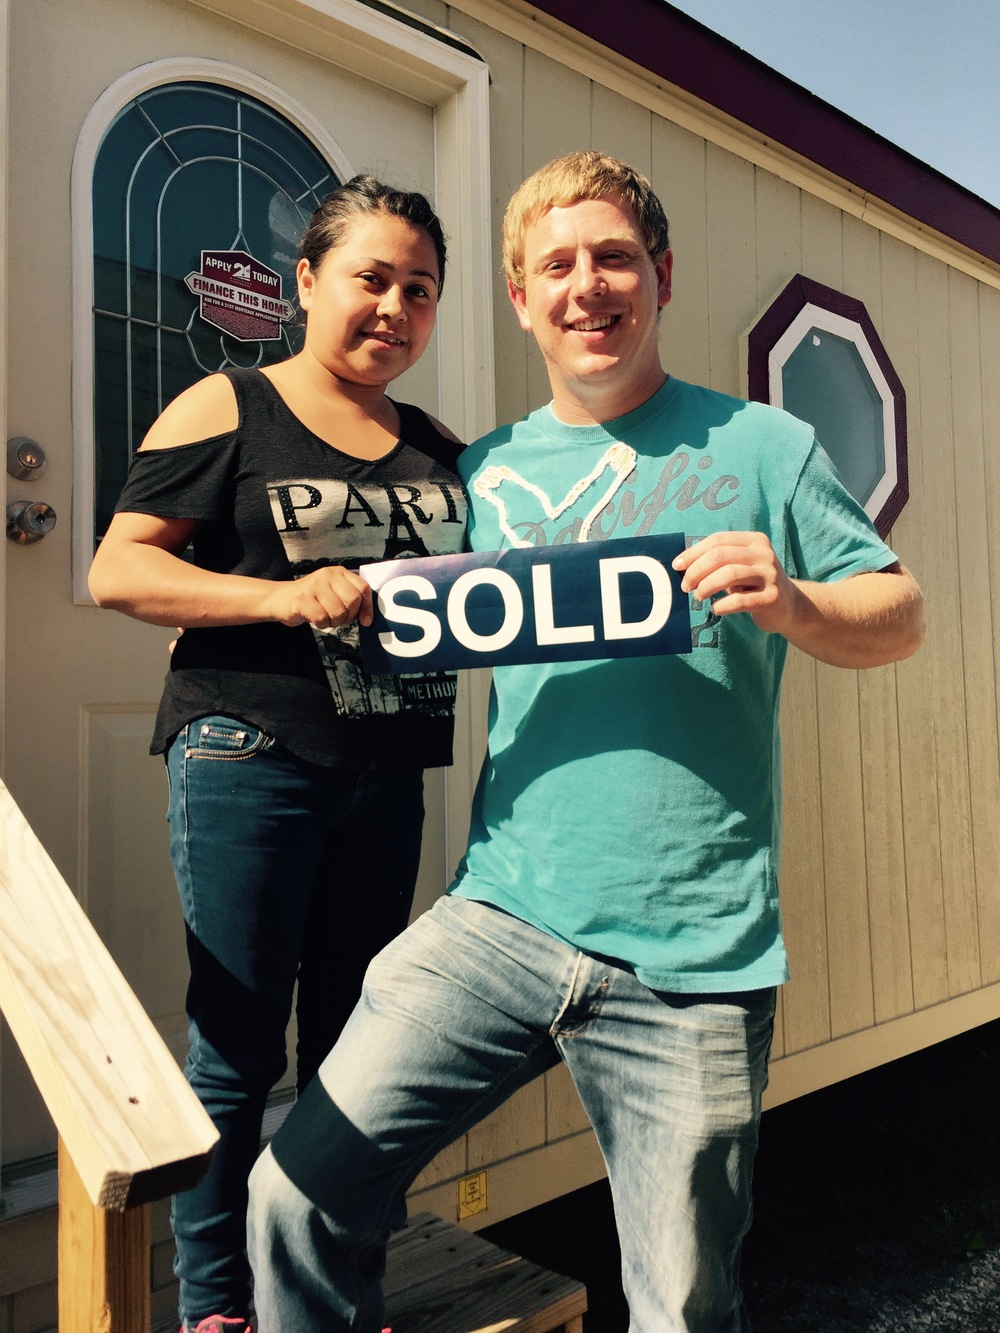 Man and Woman Happily hold SOLD sign